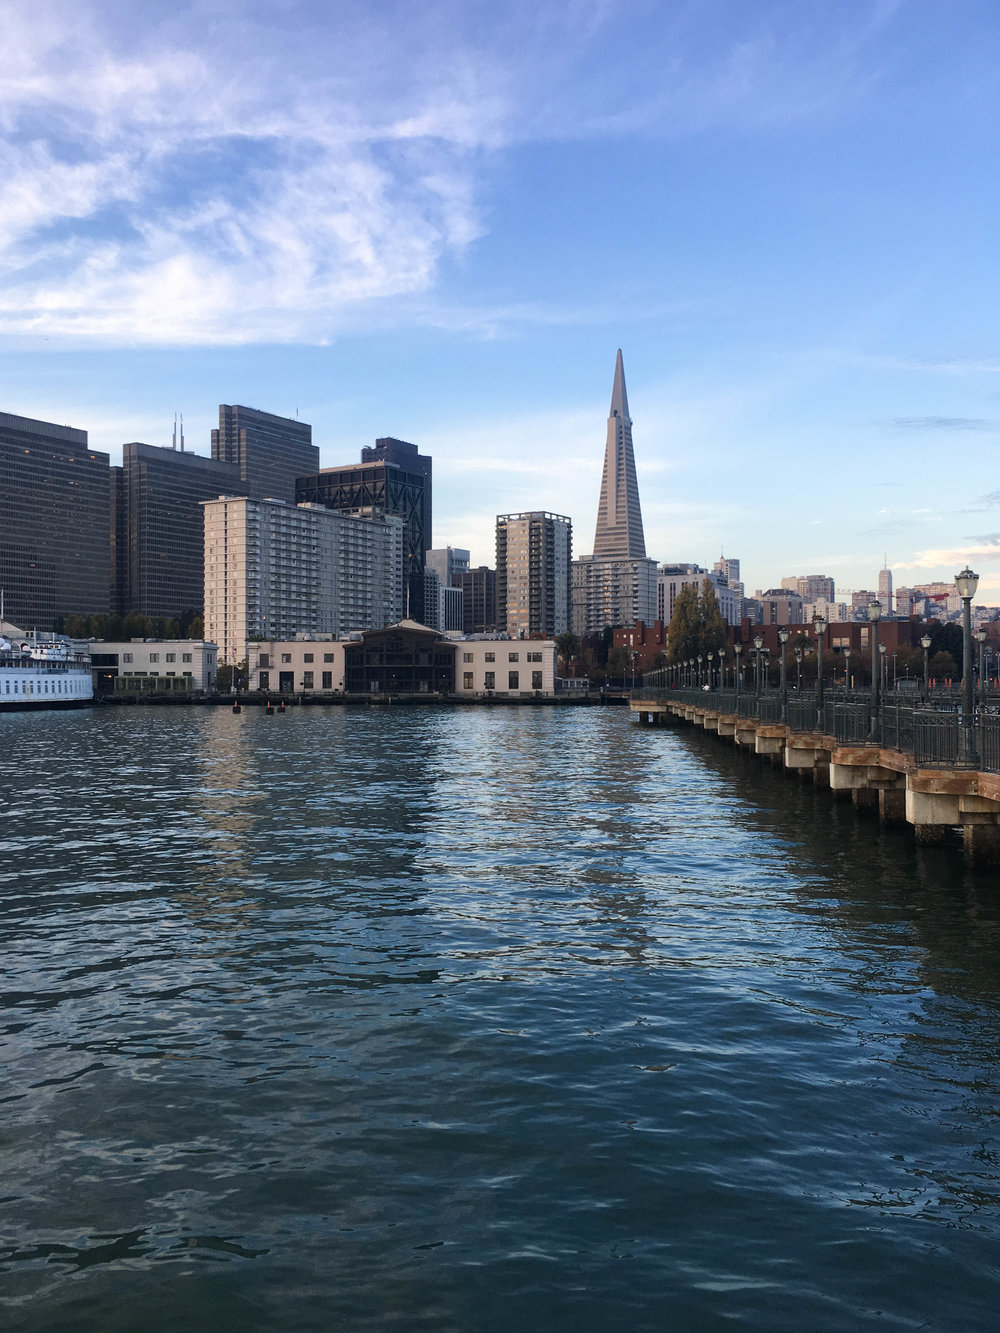 """<p style=""""font-family:brandon-grotesque;font-weight:500; font-size:11px; text-center:left; color:light grey;letter-spacing: 1px"""">OCTOBER 8, 2017 • FROM THE PIER • 📍 San Francisco, CA</p>"""